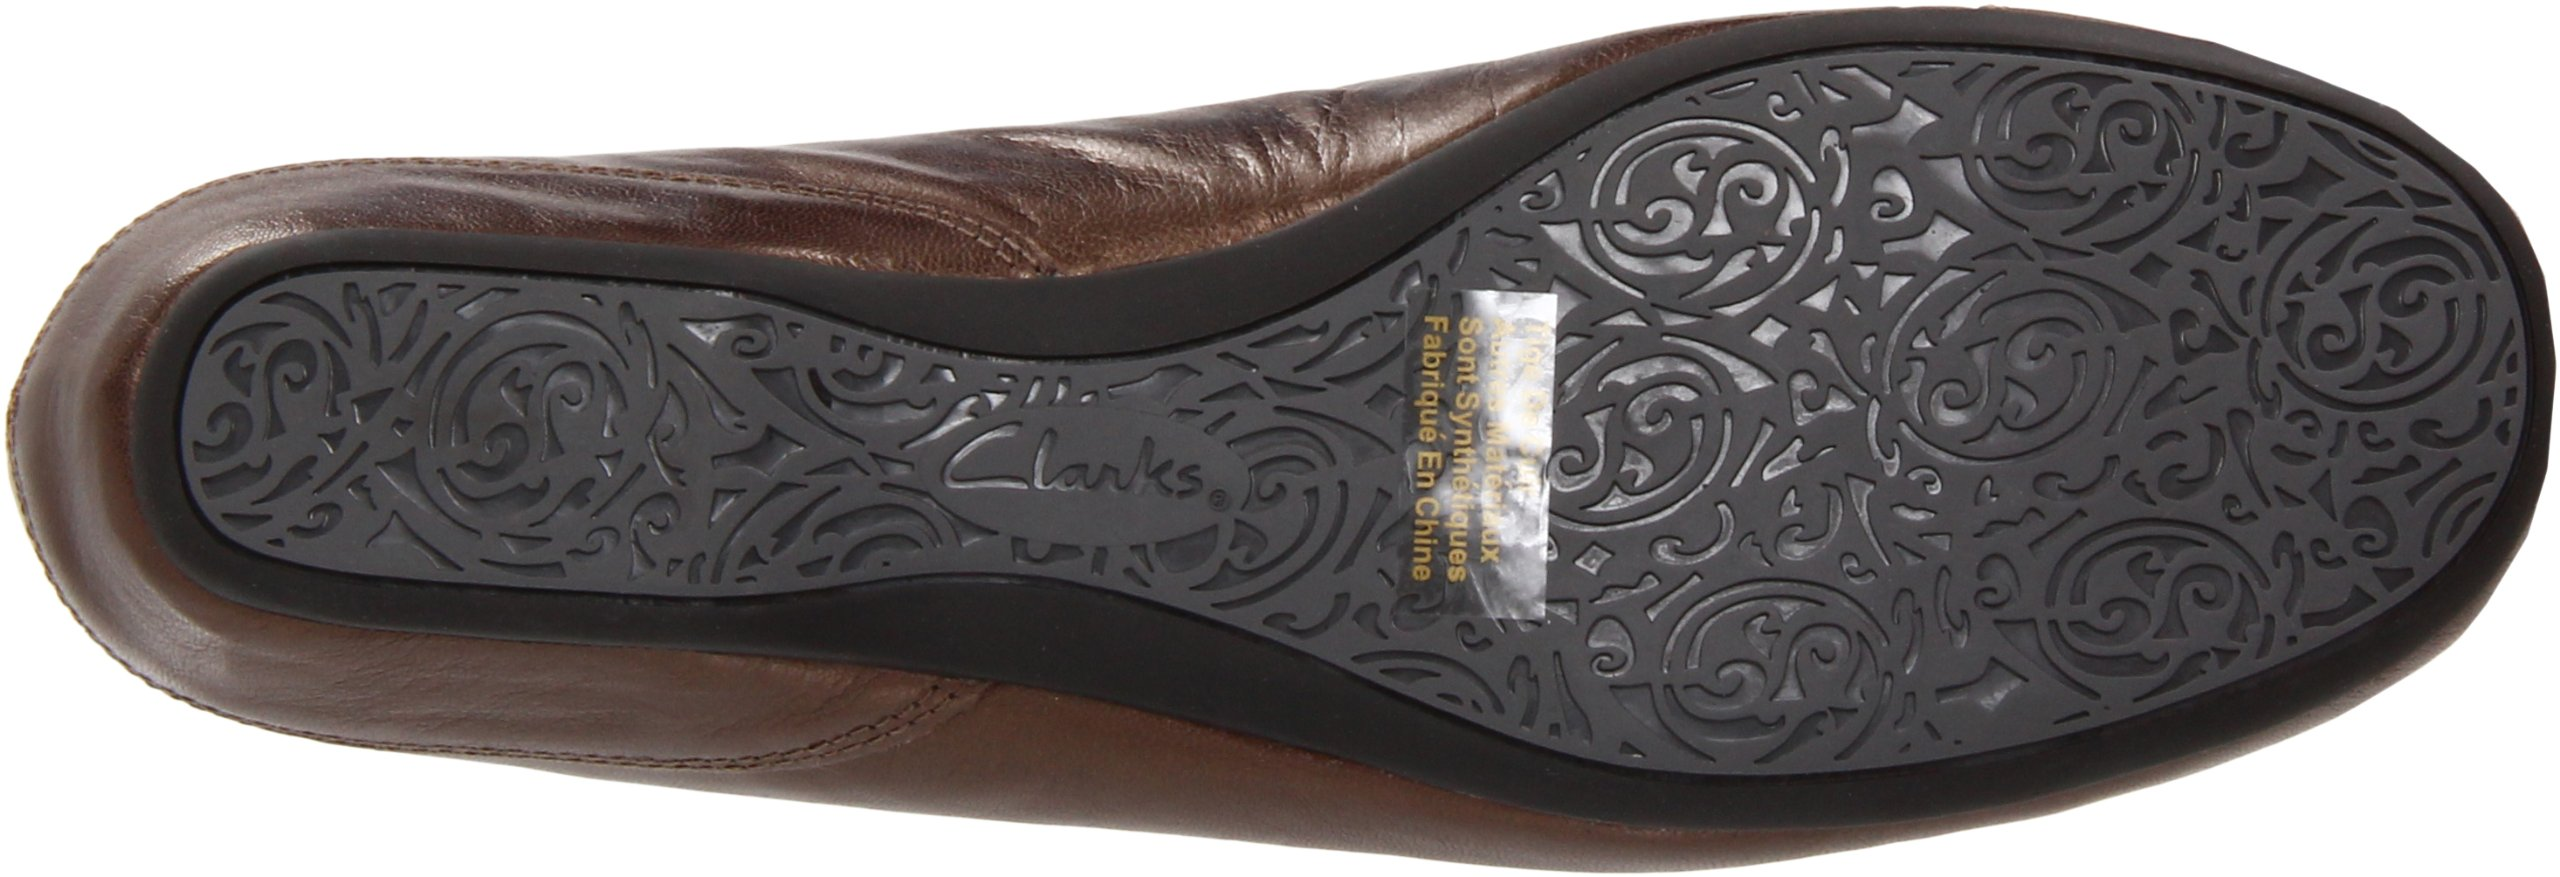 Clarks Women's Concert Choir Dress Shoes,Brown Metallic Leather,5 M US by CLARKS (Image #3)